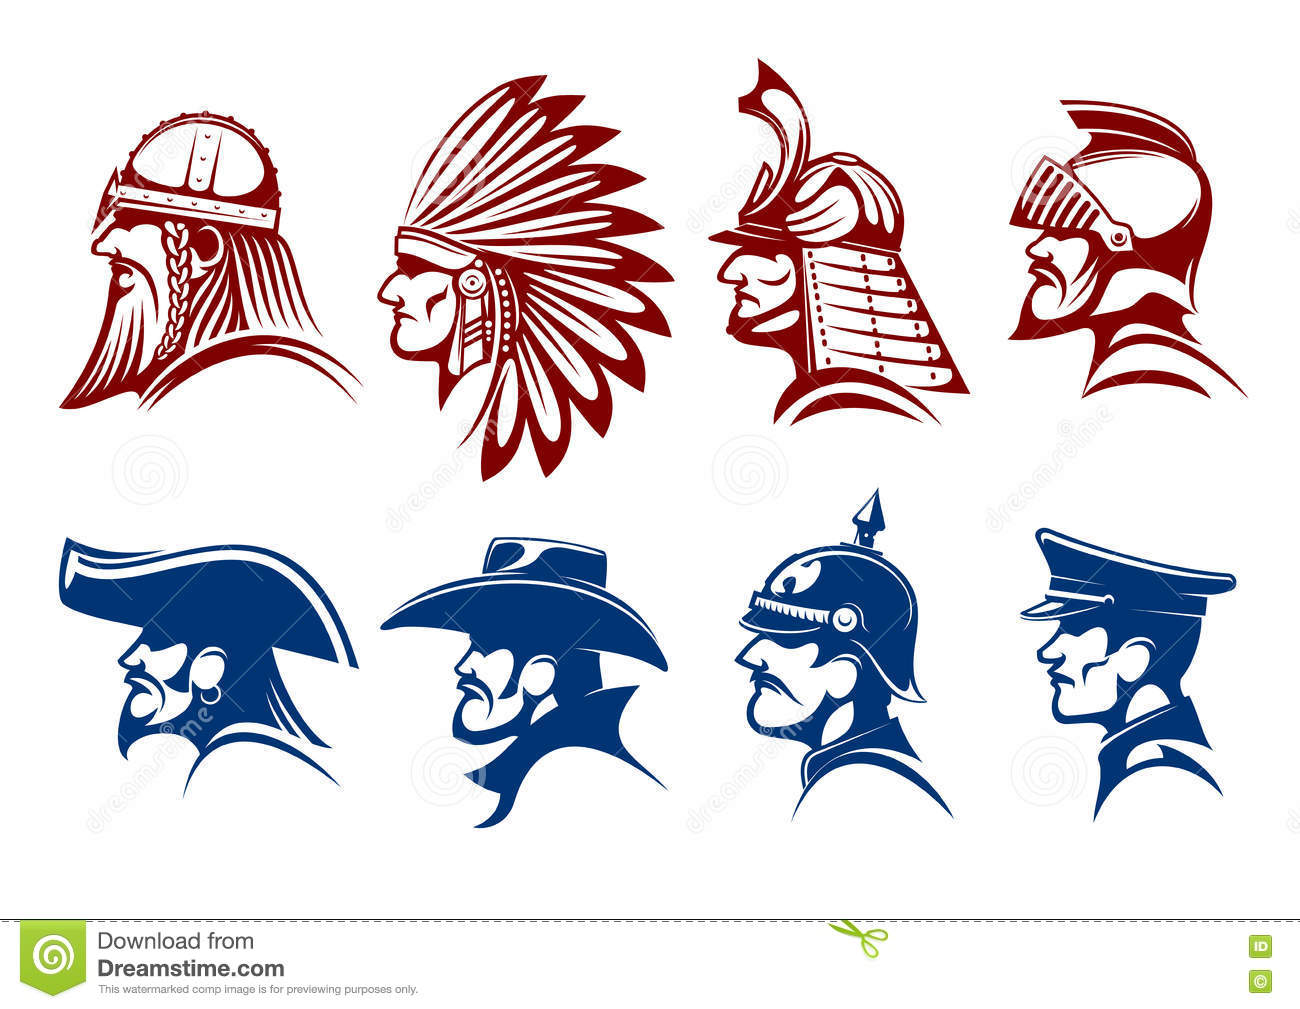 Blue and brown icons of warriors soldiers symbols stock vector blue and brown icons of warriors soldiers symbols buycottarizona Images